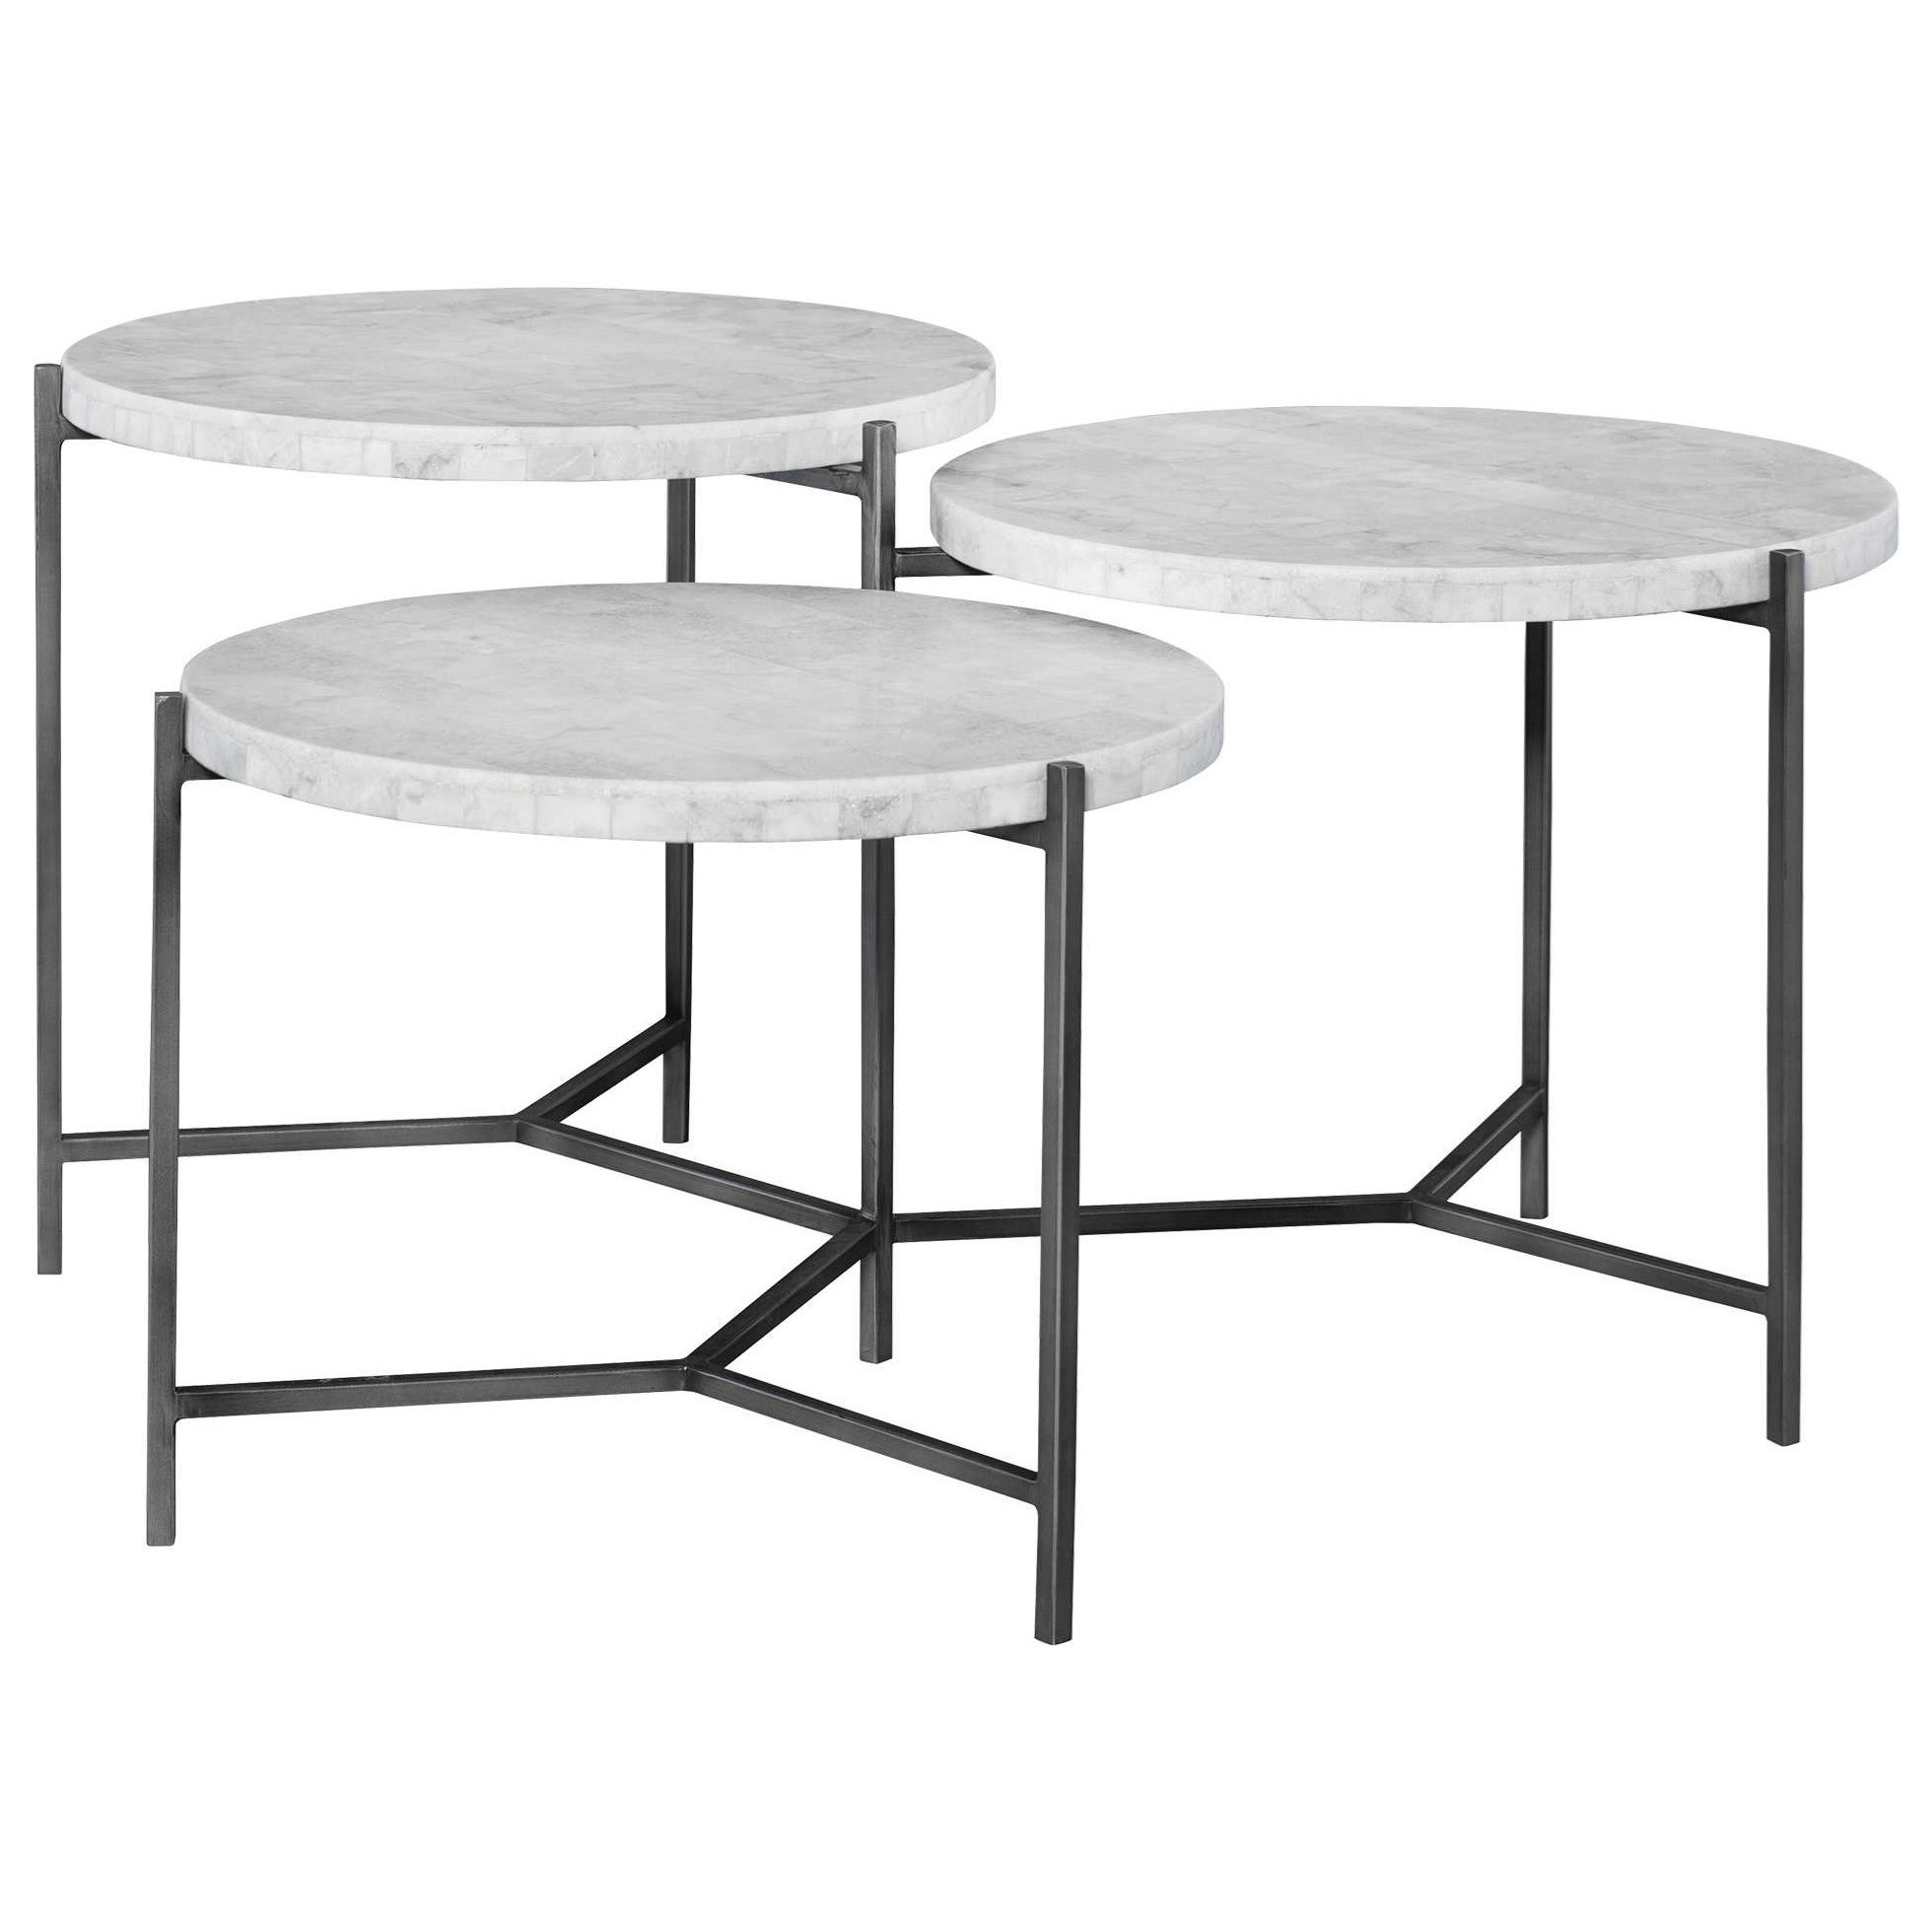 Accent Furniture - Occasional Tables Contarini Tiered Coffee Table by Uttermost at Suburban Furniture